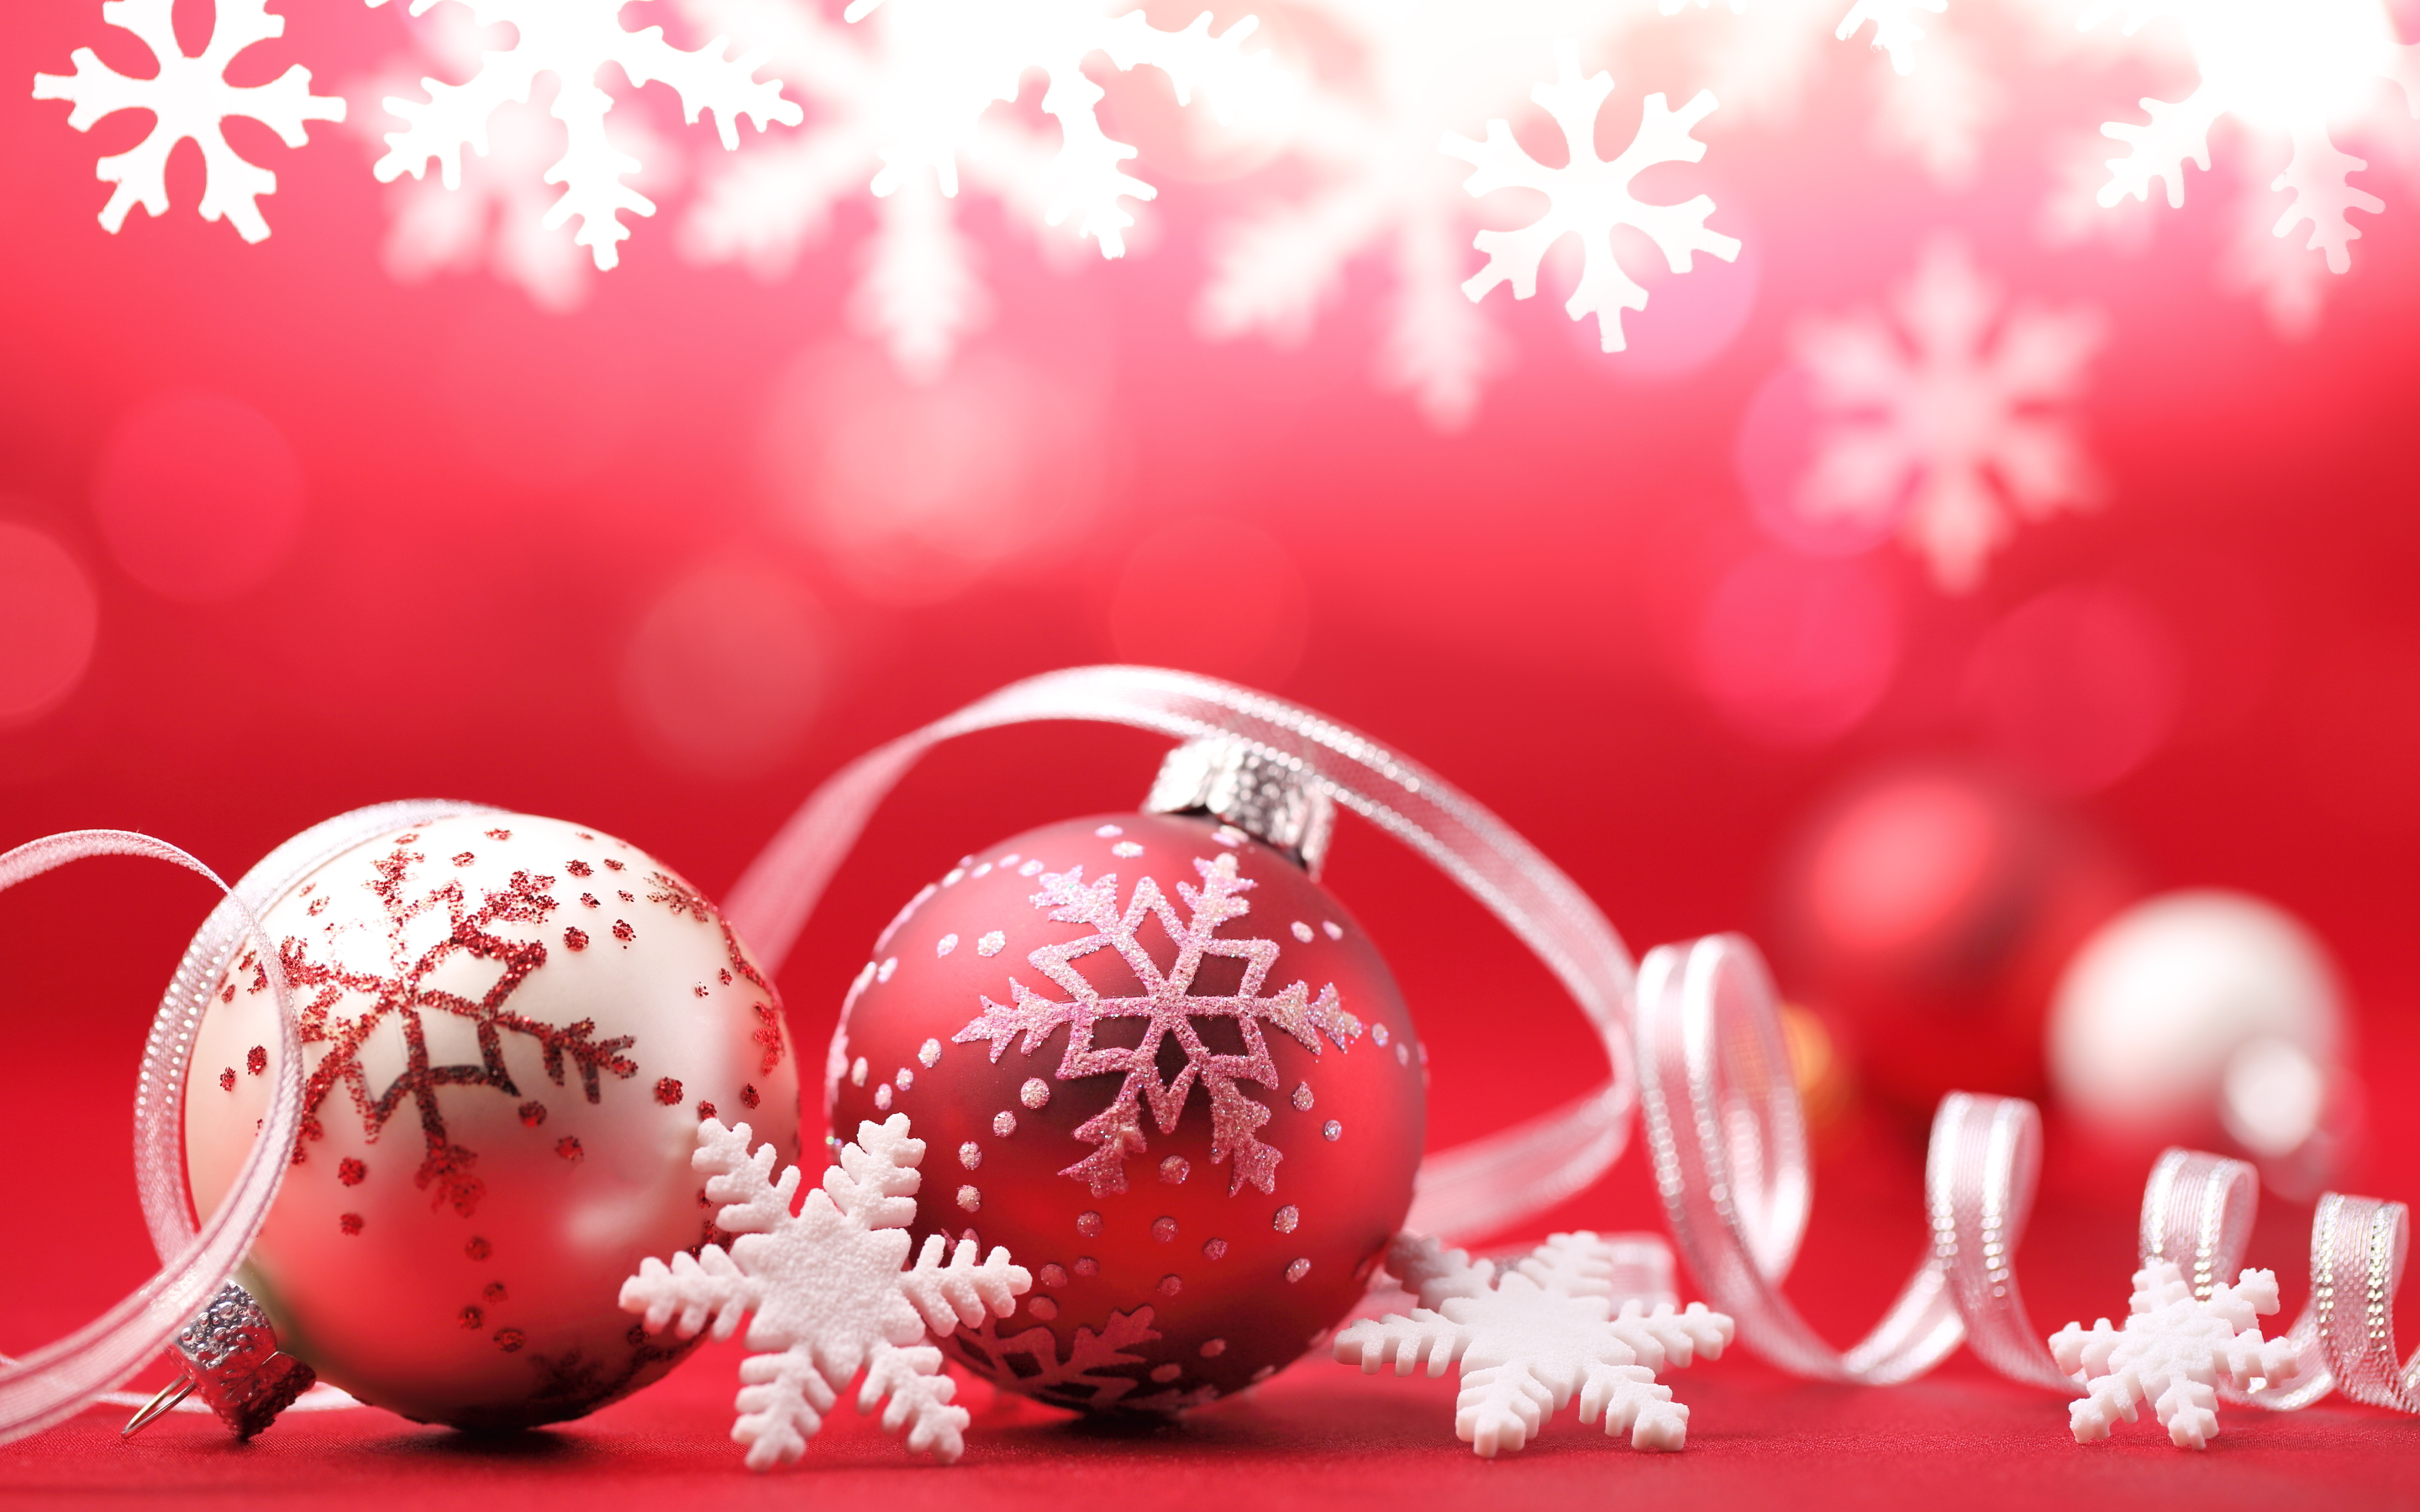 happy christmas ornaments red balls hd wallpaper